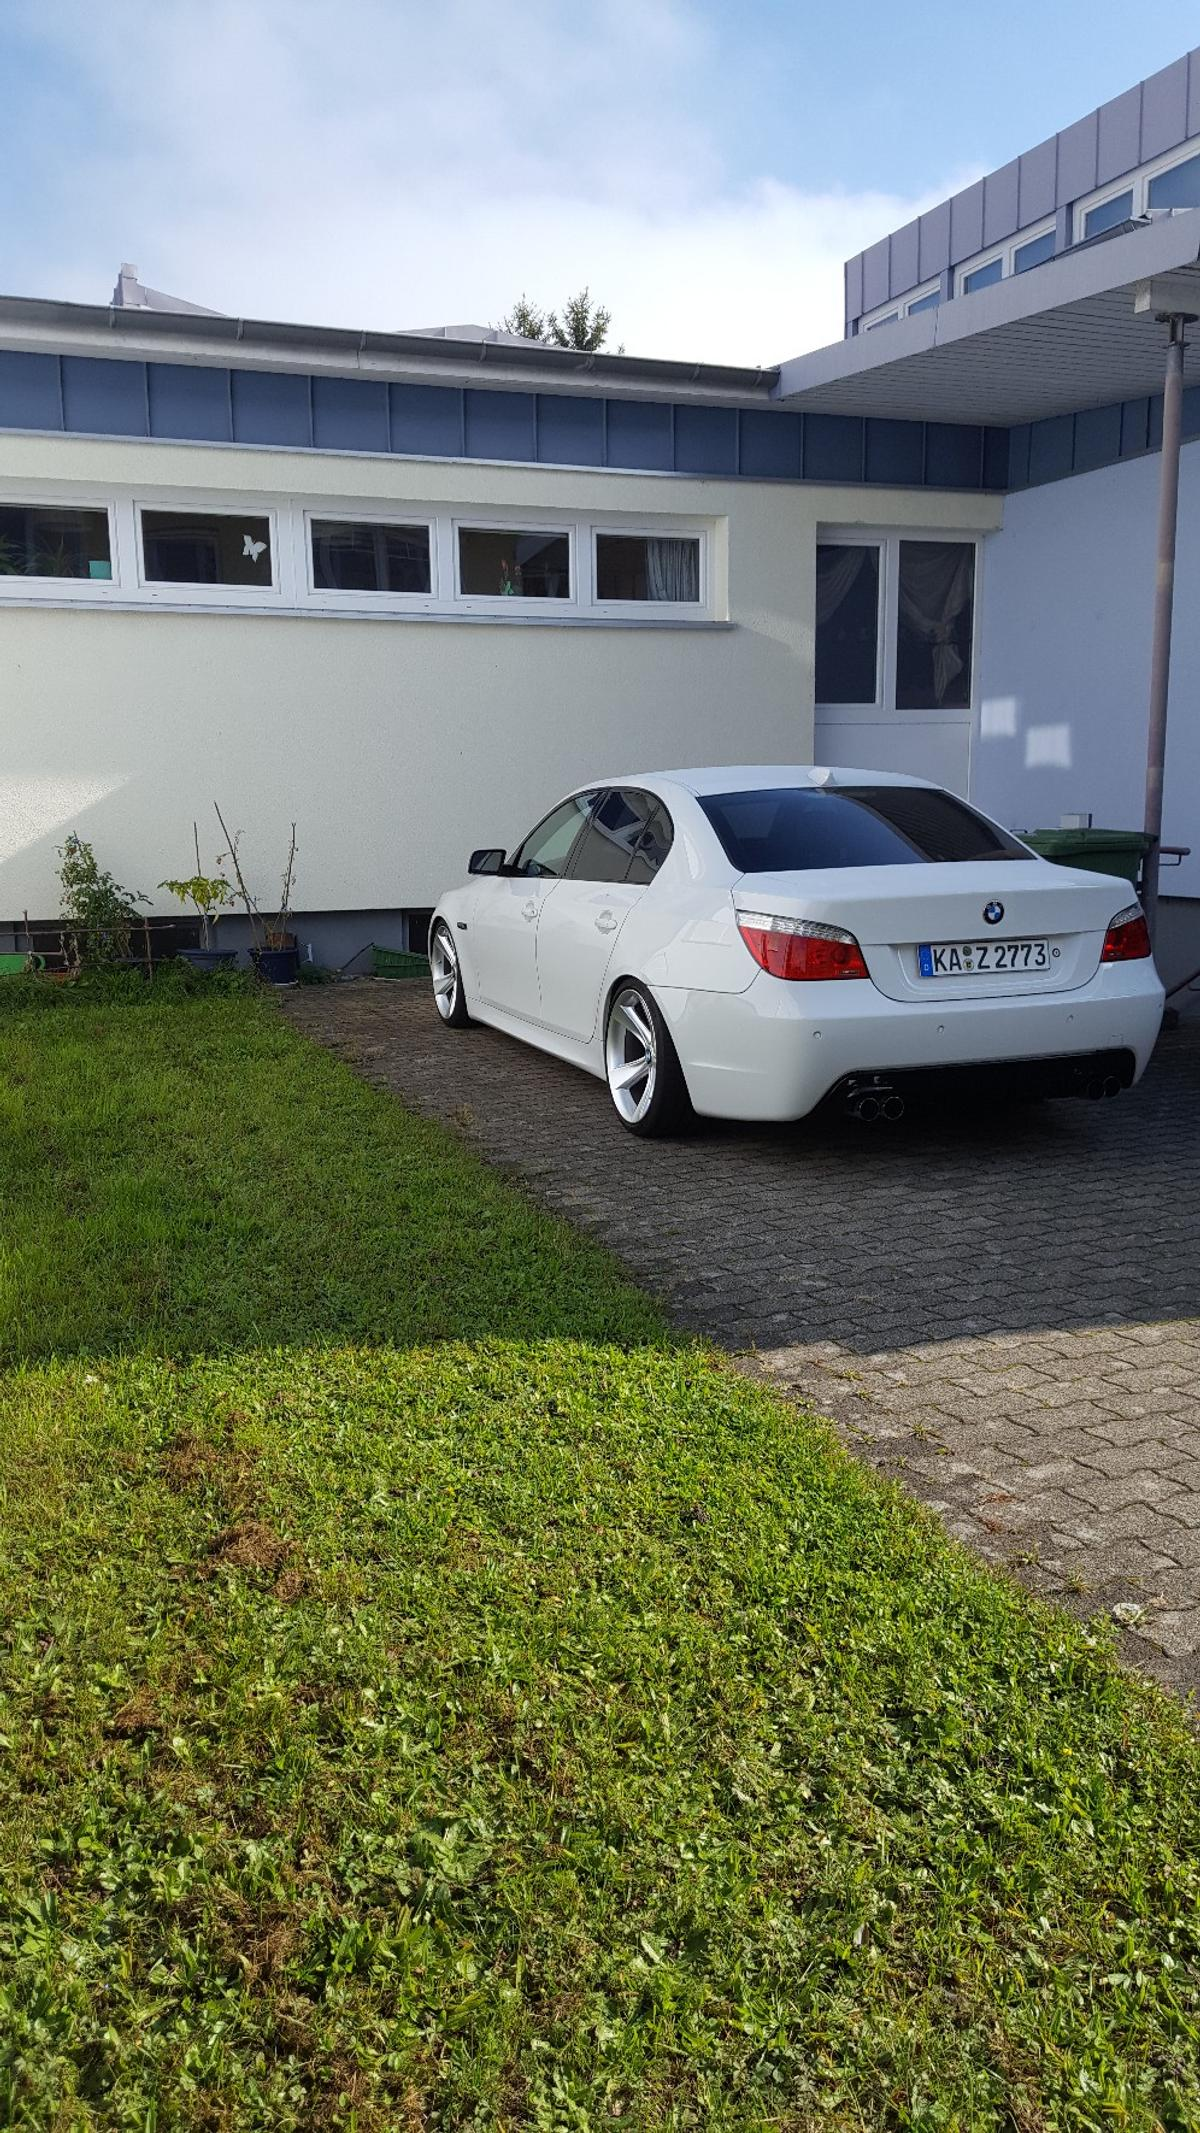 Bmw Styling 128 19 Zoll Deep Concave E60 E61 In 76287 Rheinstetten For 1 100 00 For Sale Shpock